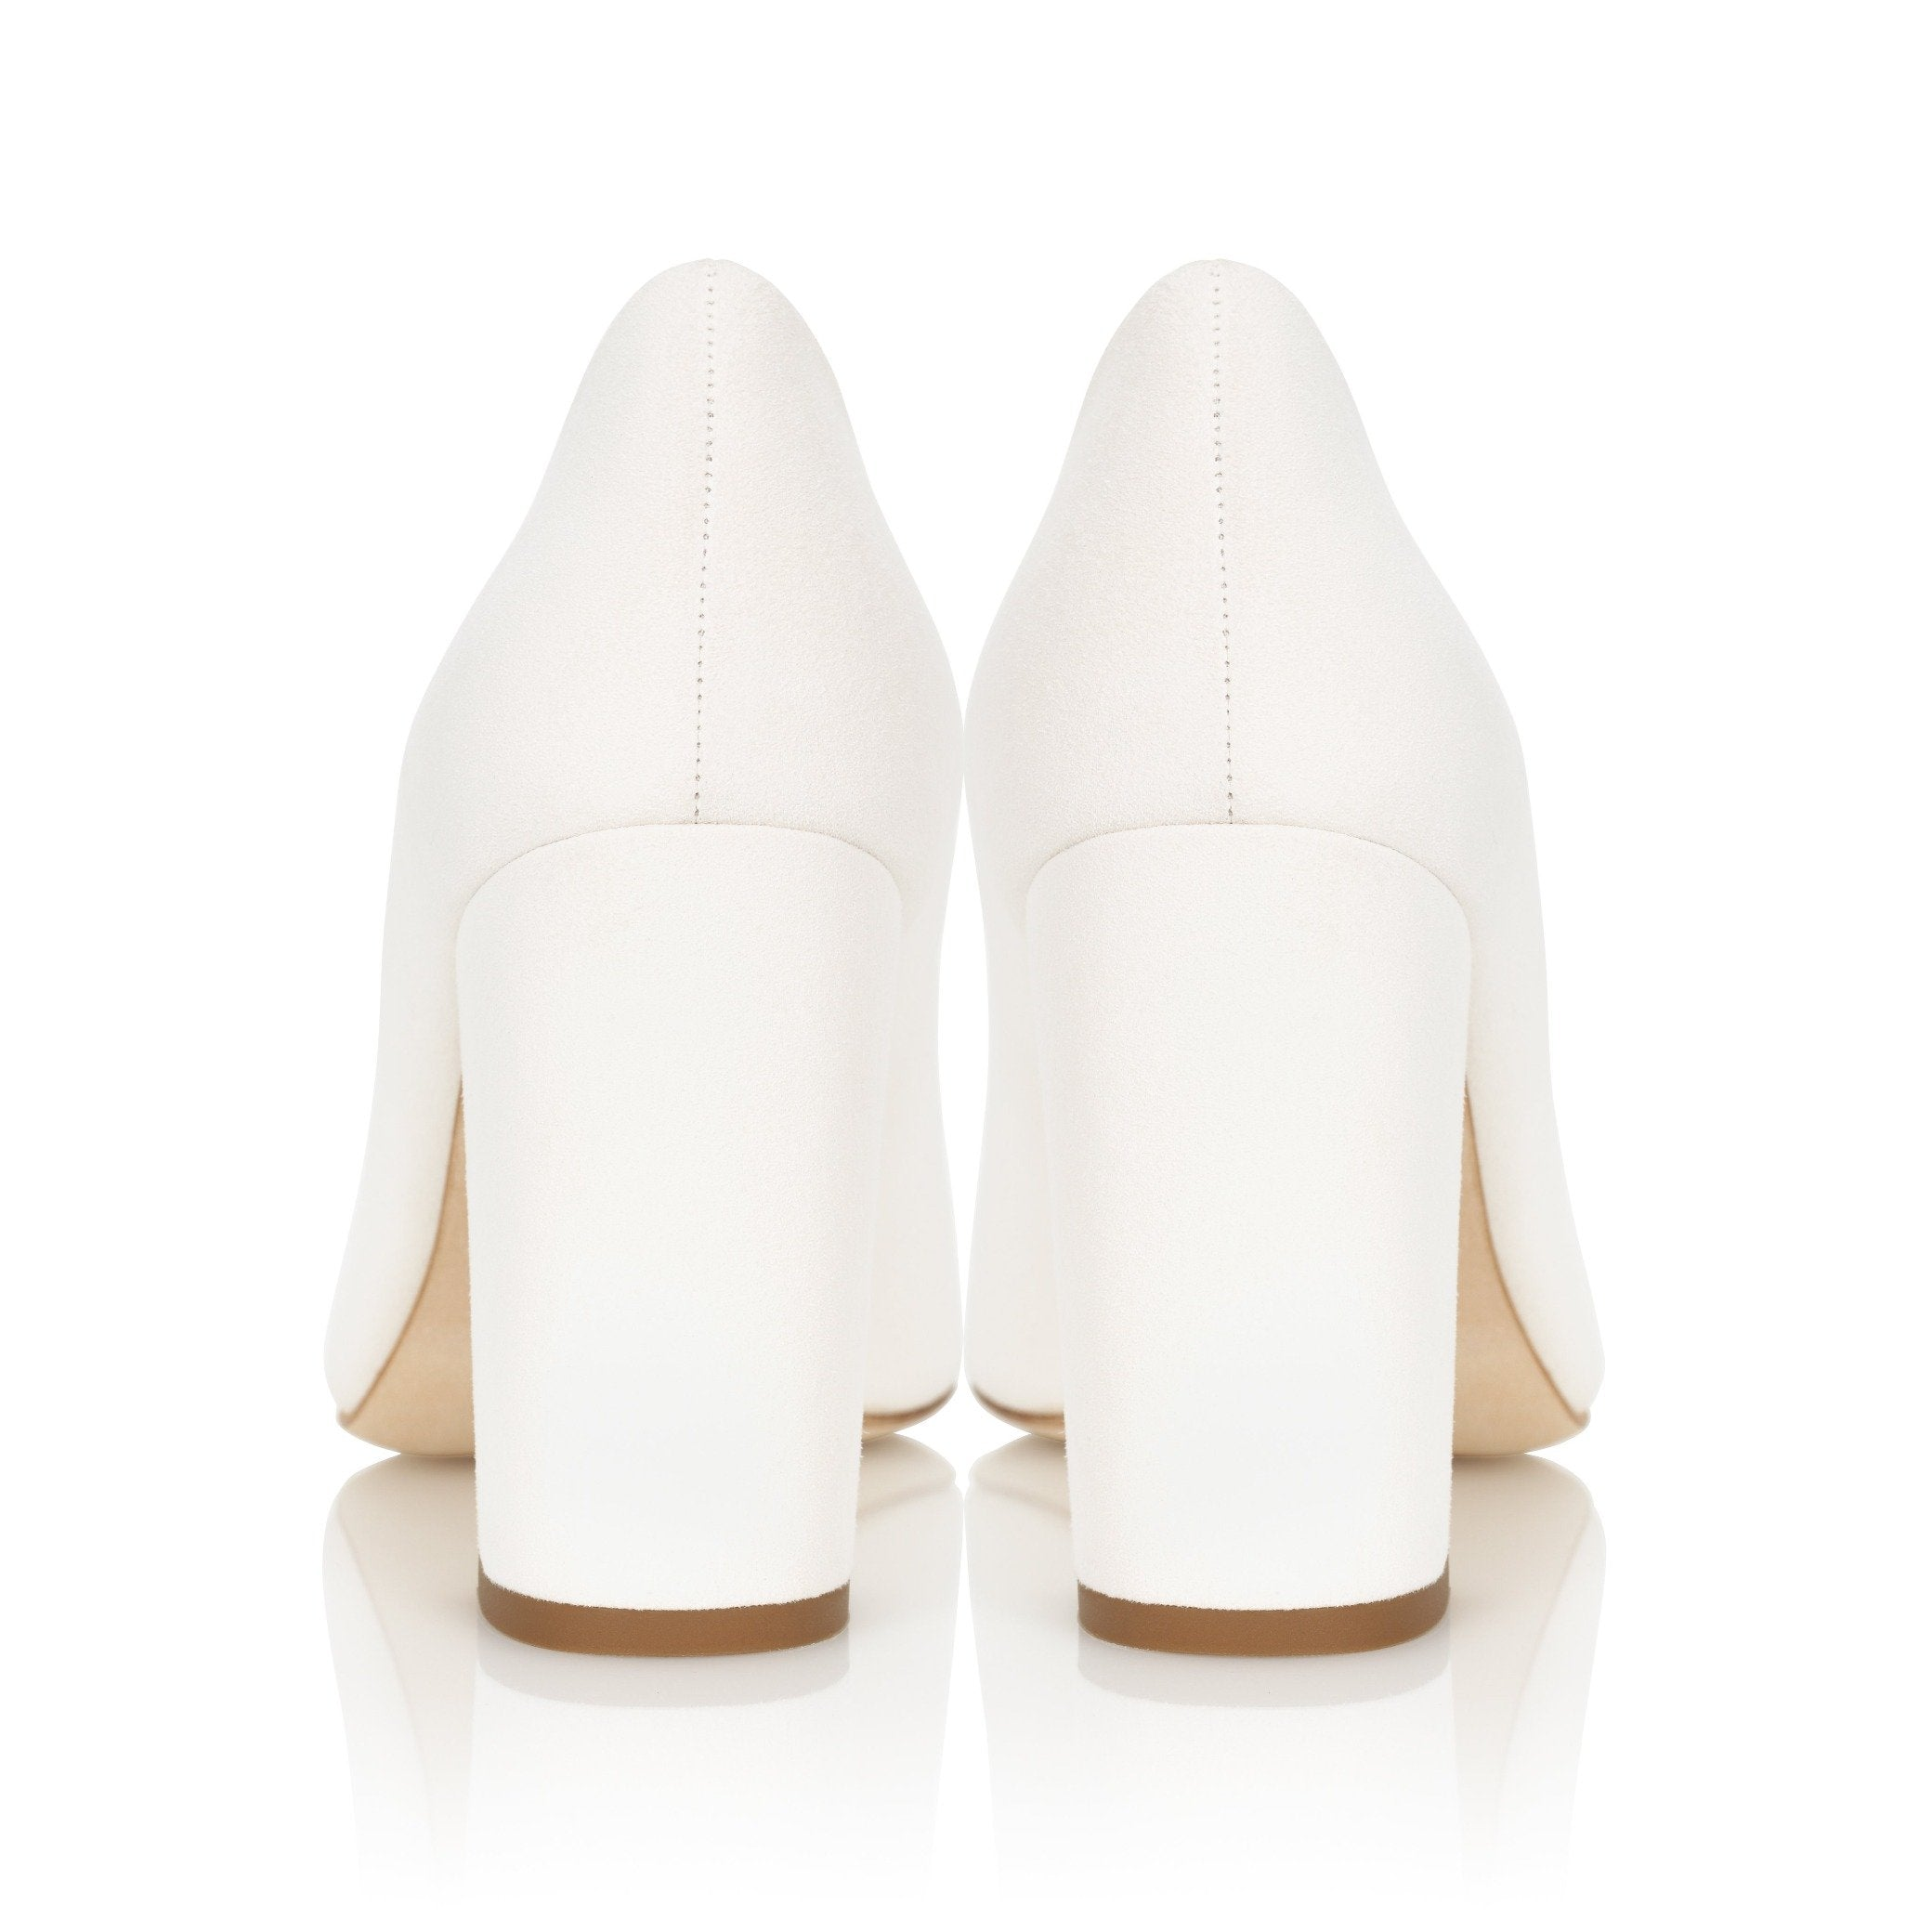 Mia Ivory Block Heel Suede Court Shoe By Emmy London Heel Shot